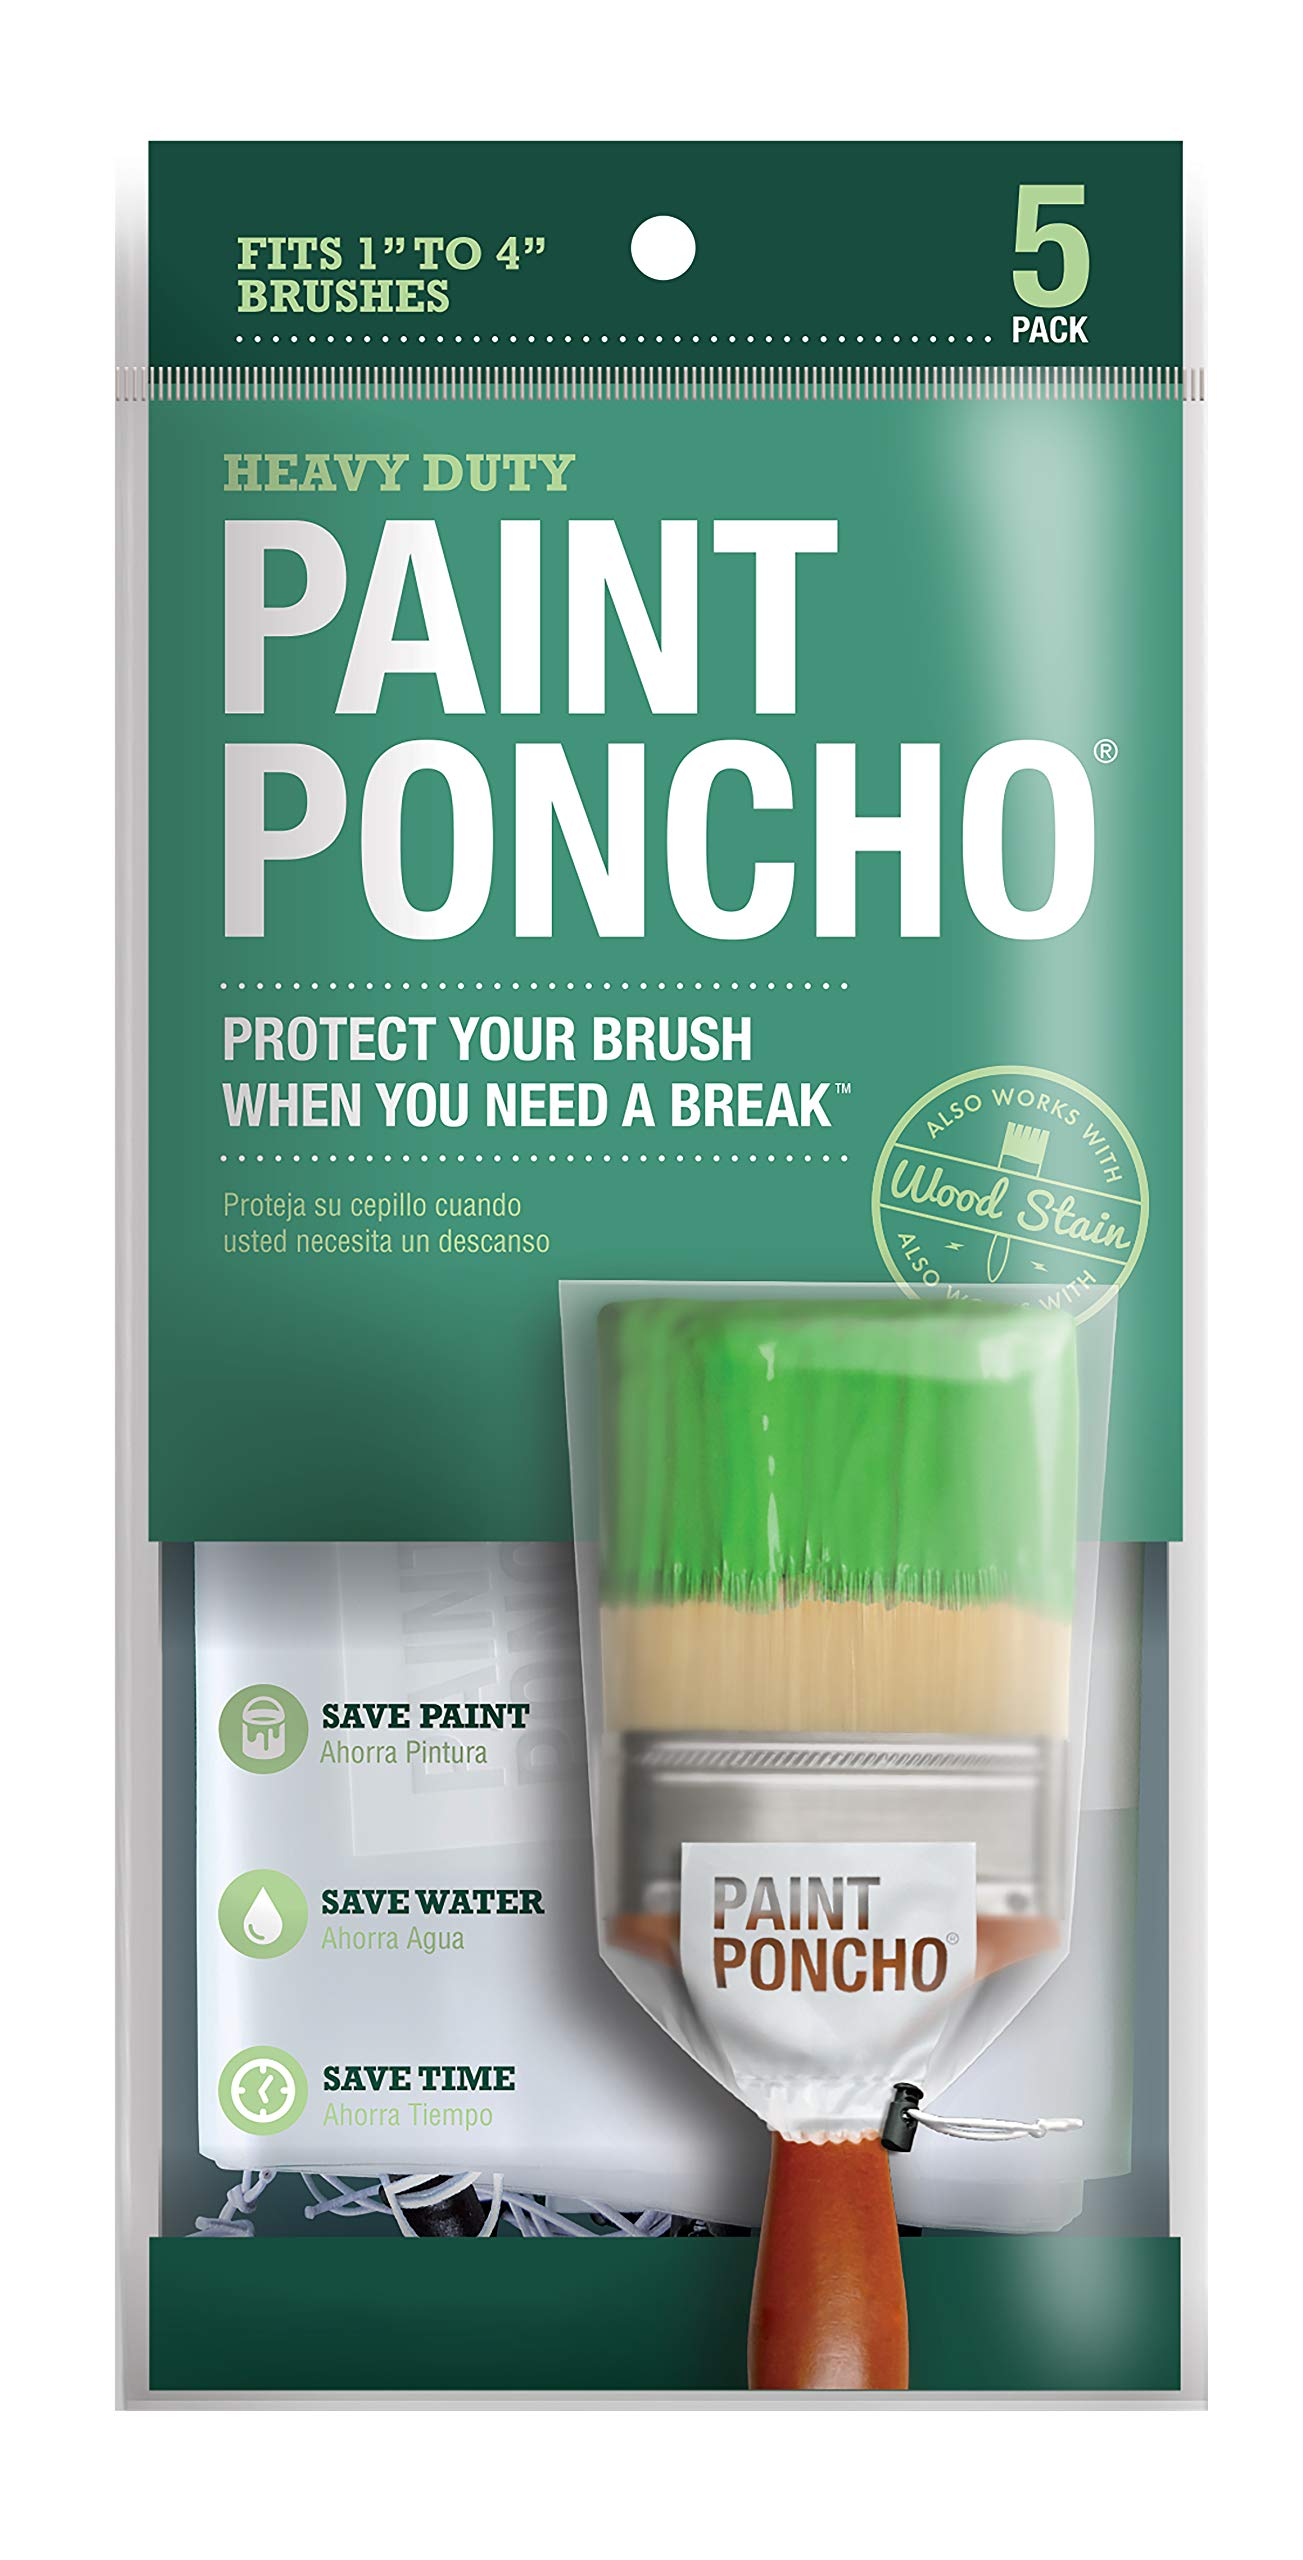 """Paint Poncho Wet Roller/Paint Brush Covers 5 Pack Fits 1"""" to 4"""" Brushes"""